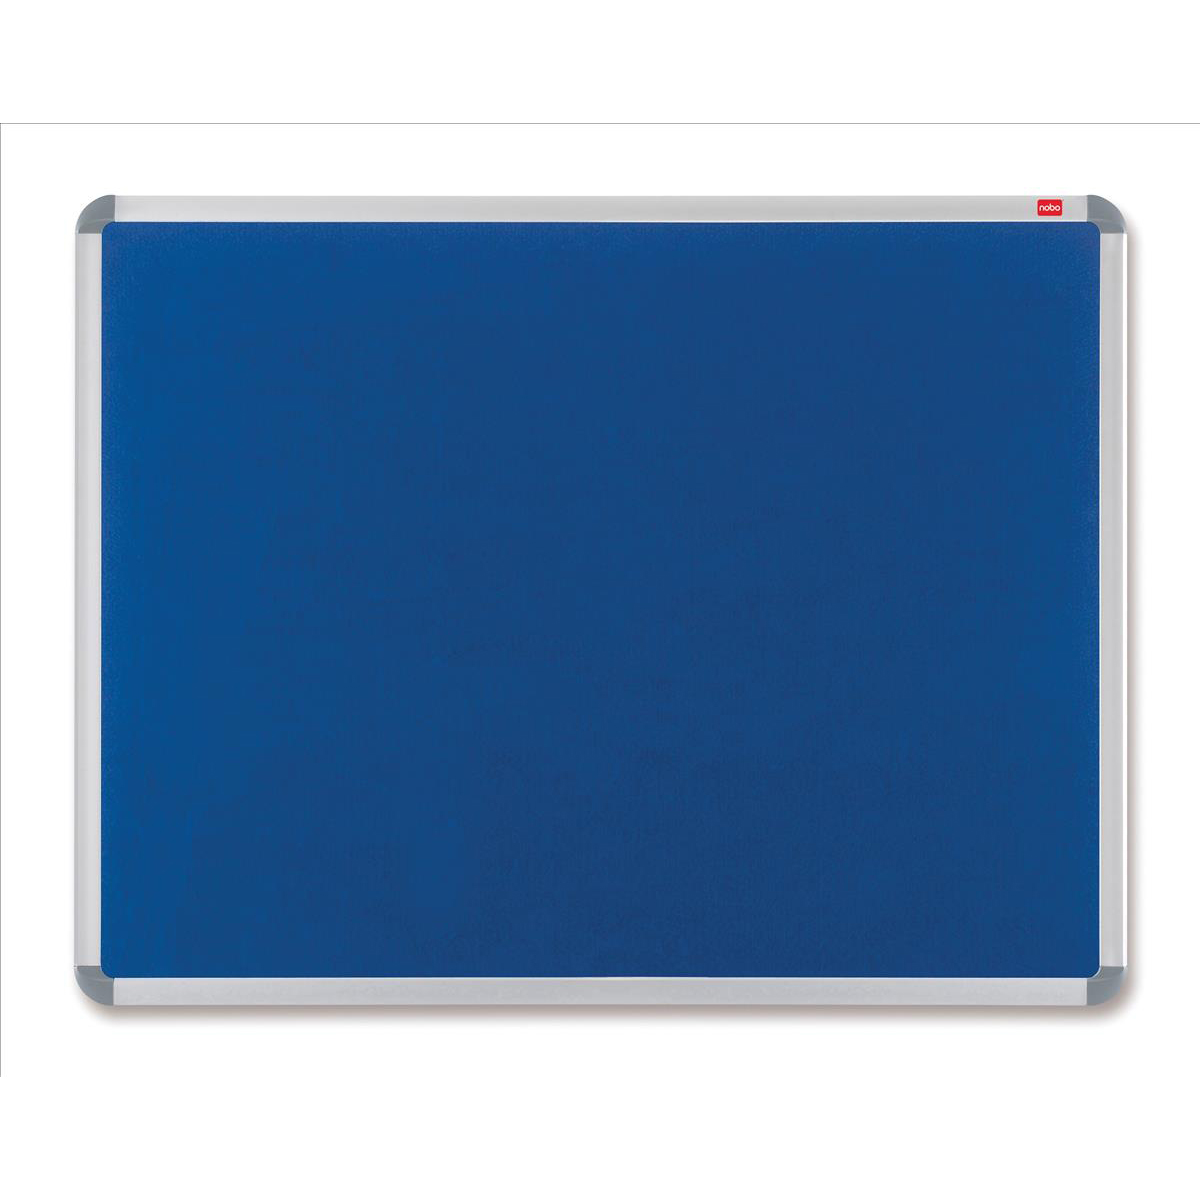 Nobo Prestige Felt Noticeboard with Fixings and Aluminium Frame W1500xH1000mm Blue Ref 30234148